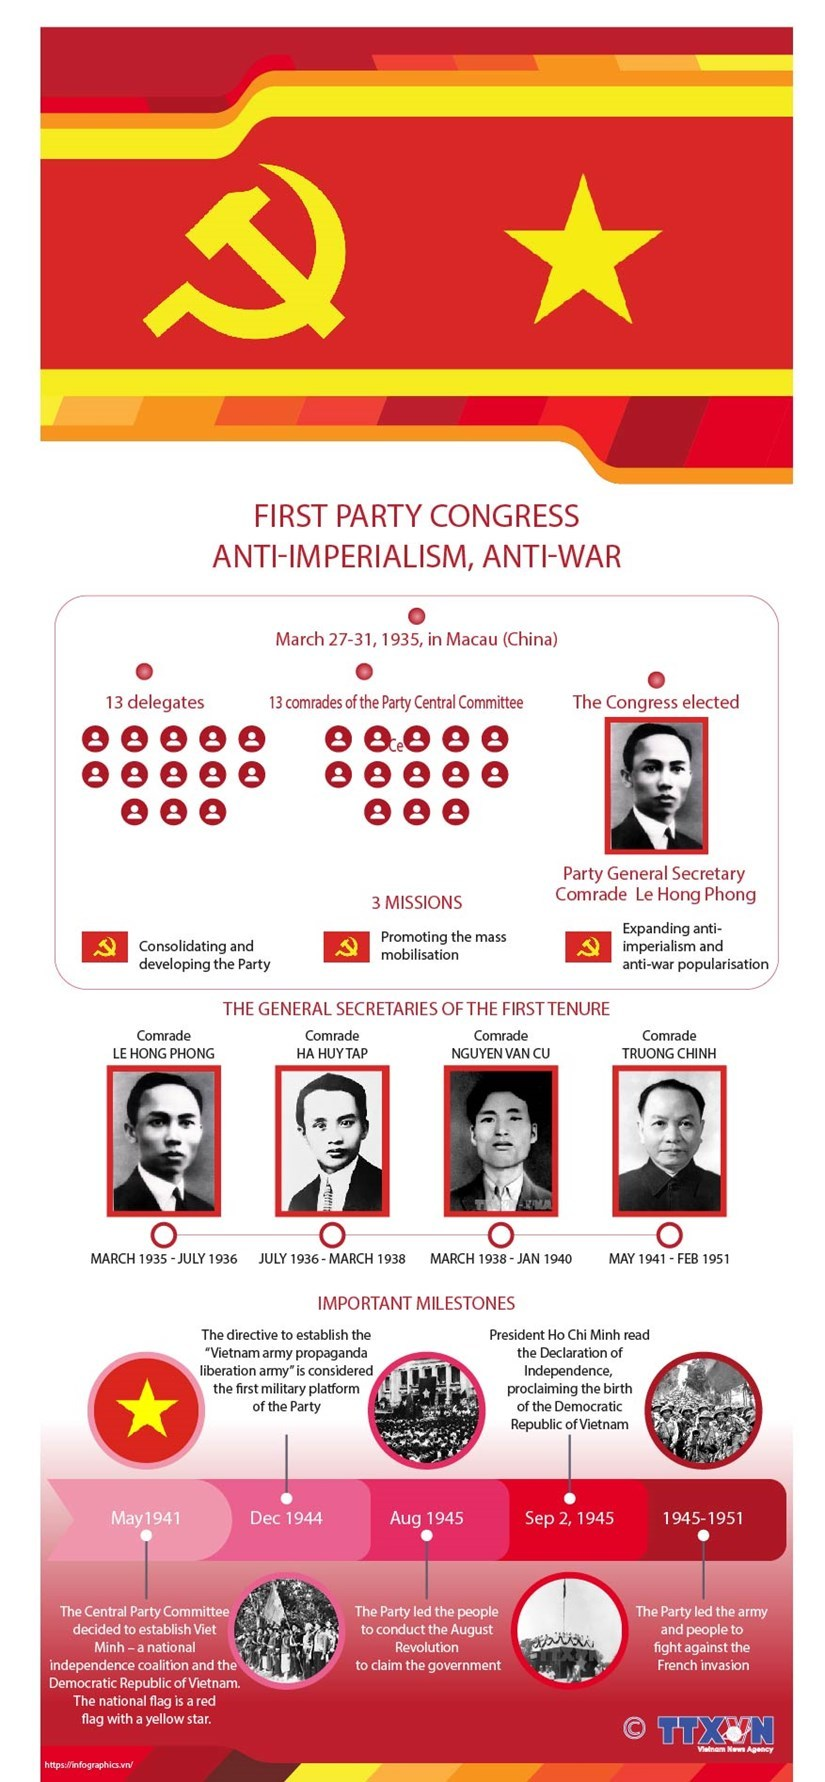 First Party Congress: Unifying revolutionary movements